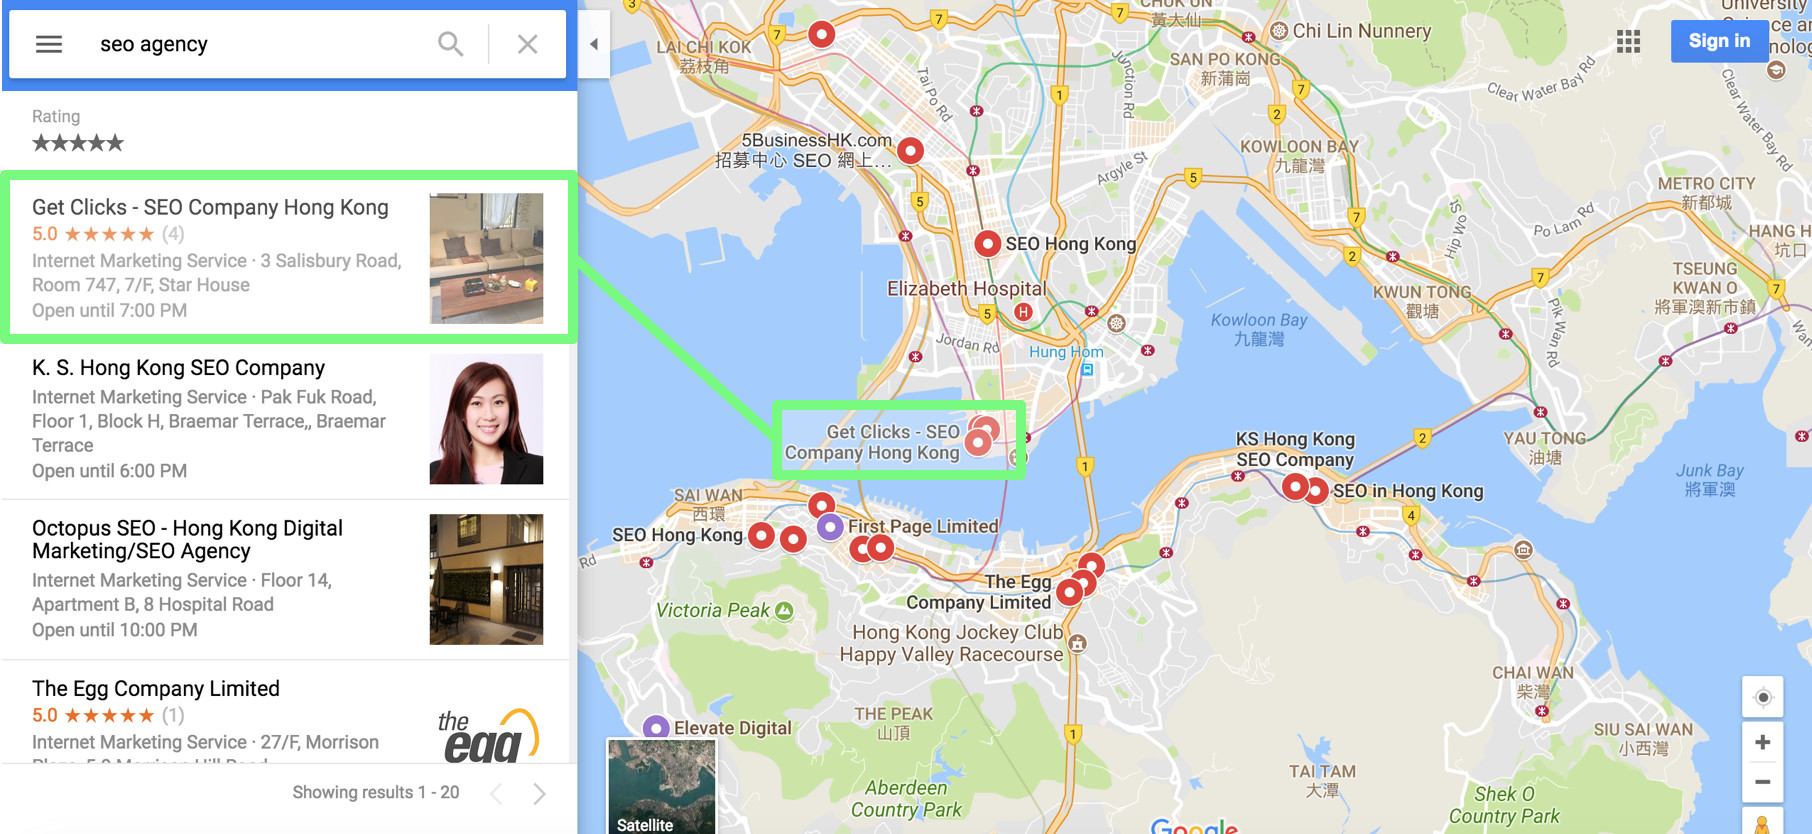 Local SEO Services (Google Maps) ← Get Clicks Hong Kong on google map singapore, google map china, google map kowloon tong, google map br, google map kowloon hong kong, google map ne, google map taiwan,